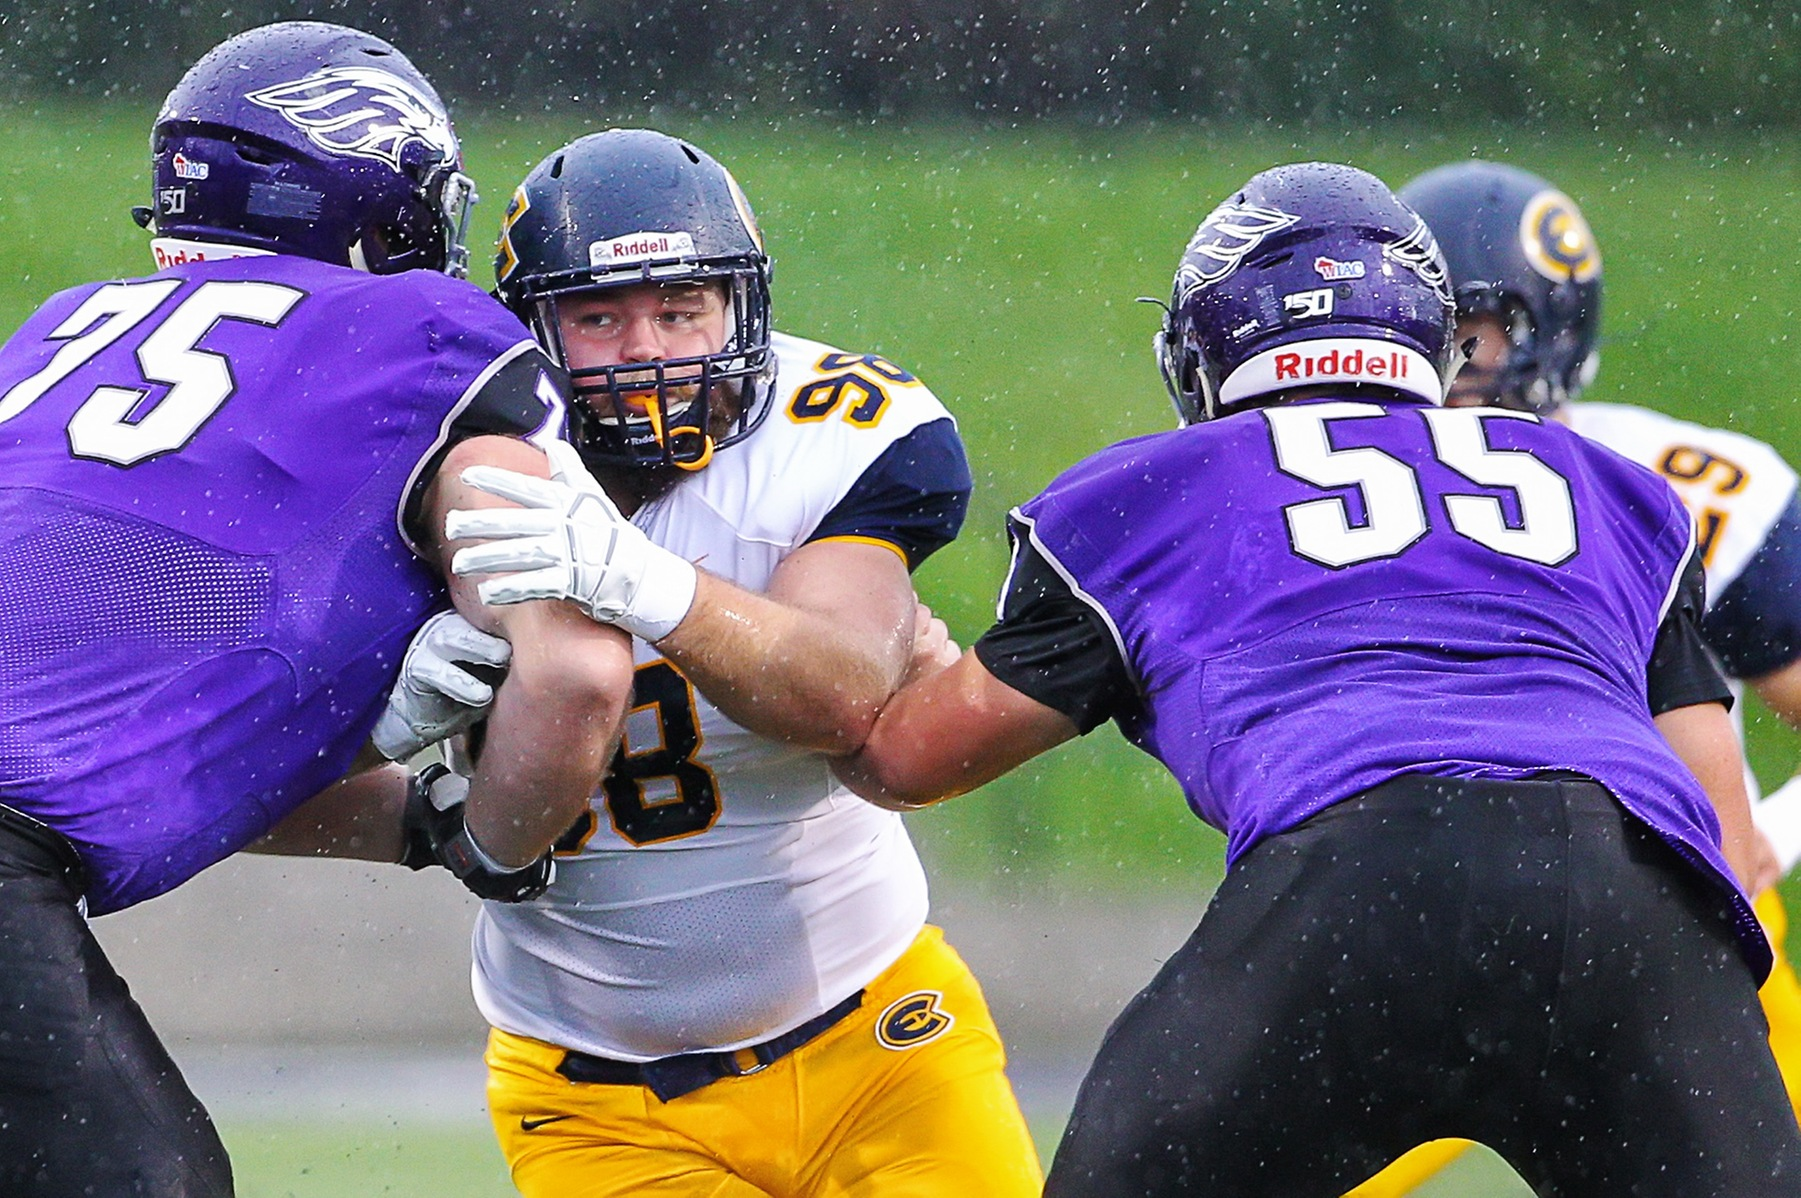 Blugolds fall on the road to No. 3 Whitewater, 24-14